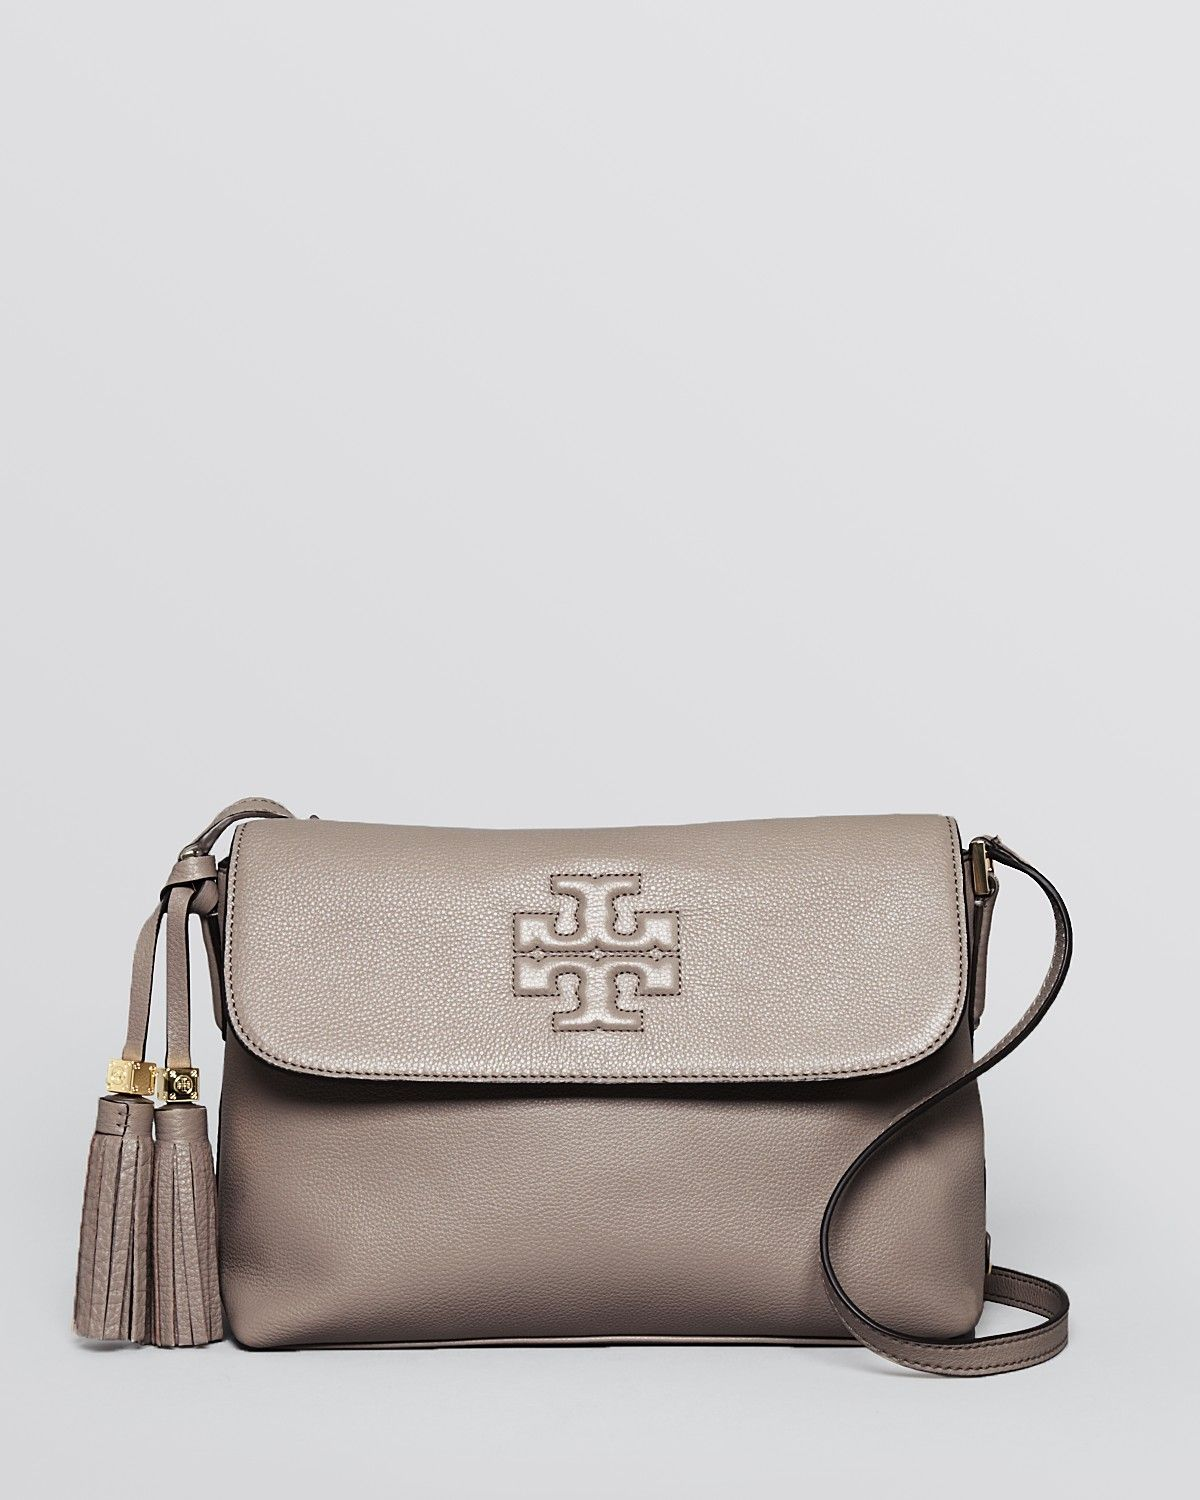 9d298d03609 Tory Burch Crossbody - Thea Messenger